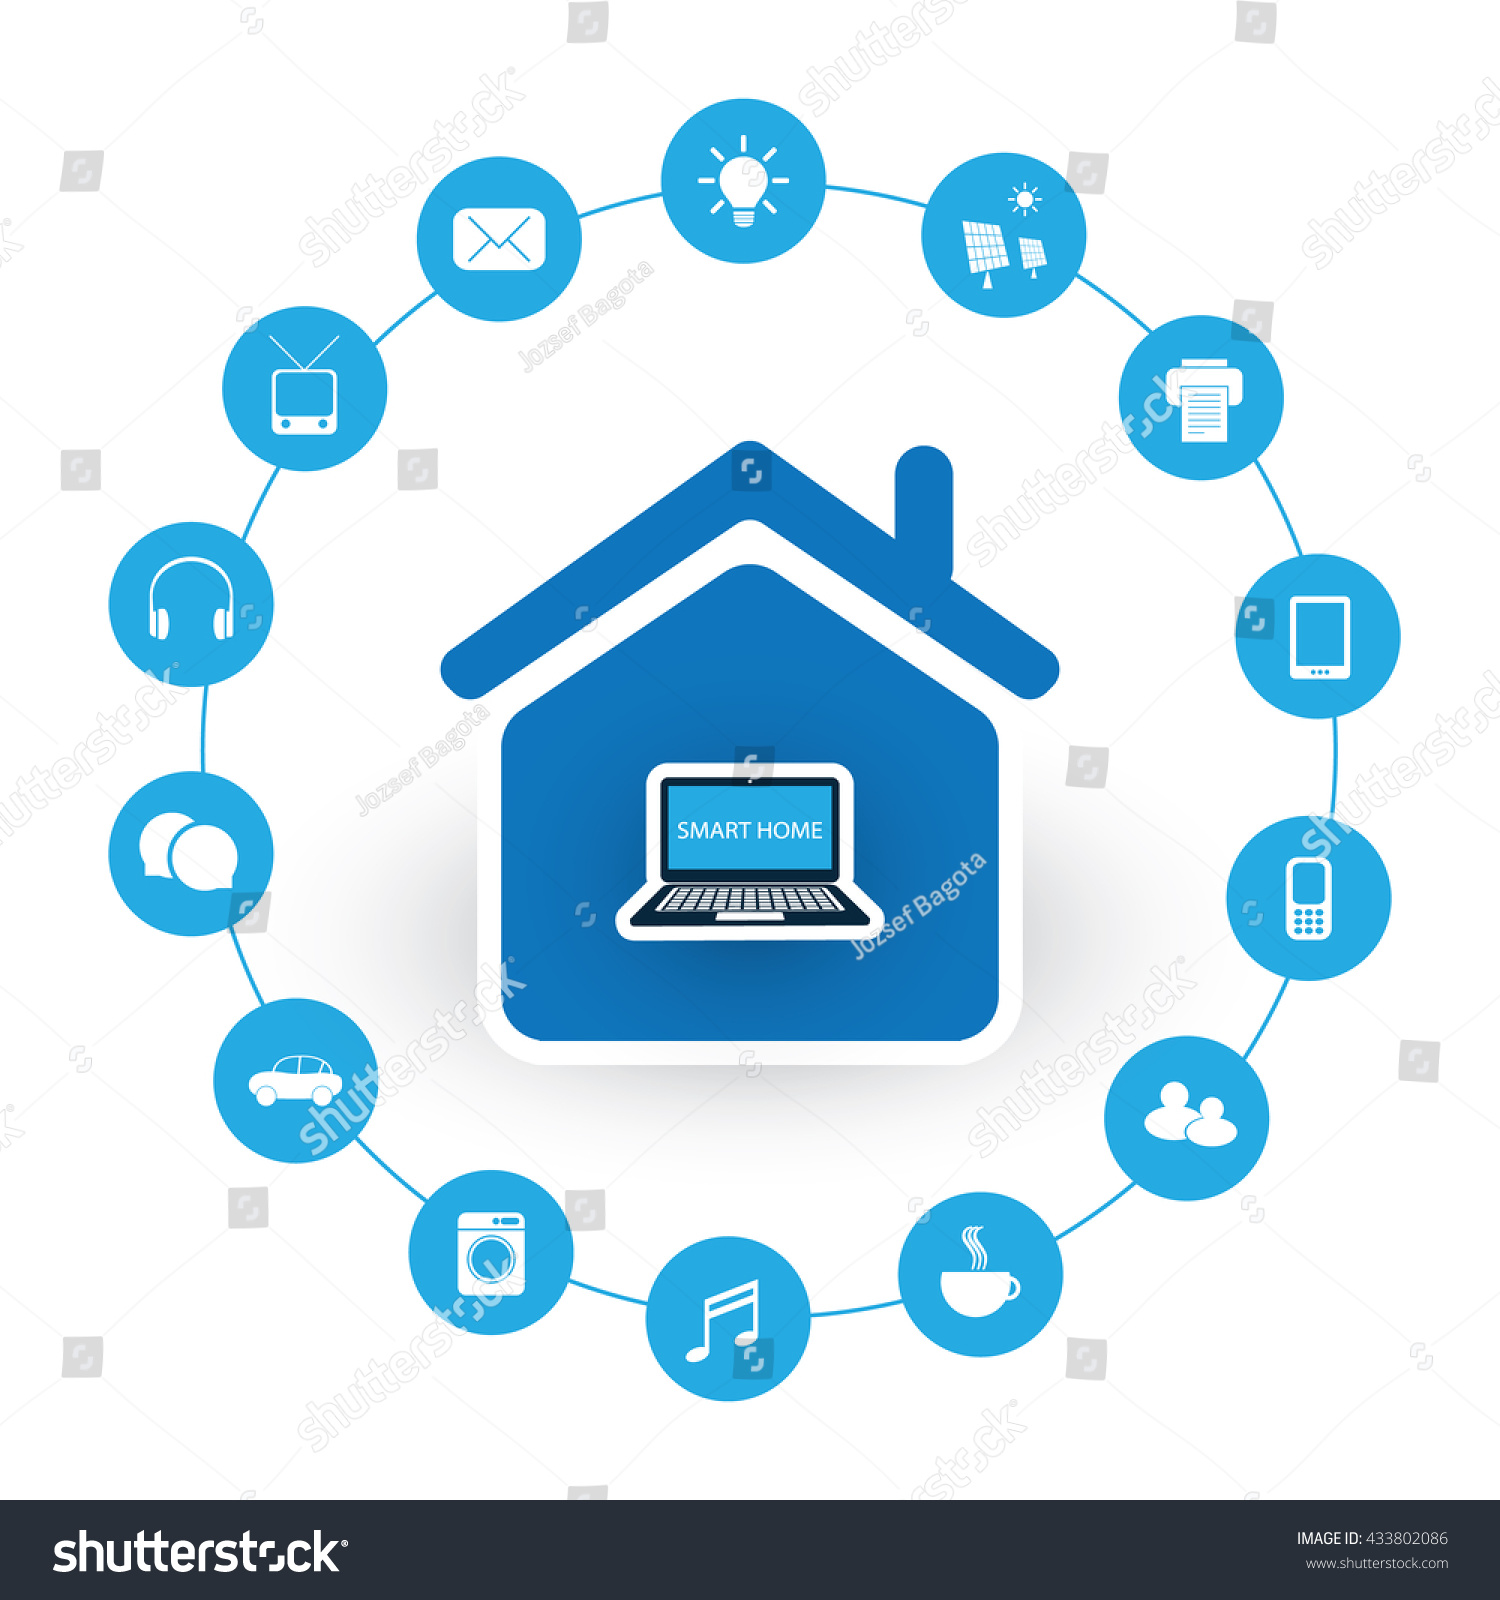 internet of things digital home and networks design concept with icons - Digital Home Designs